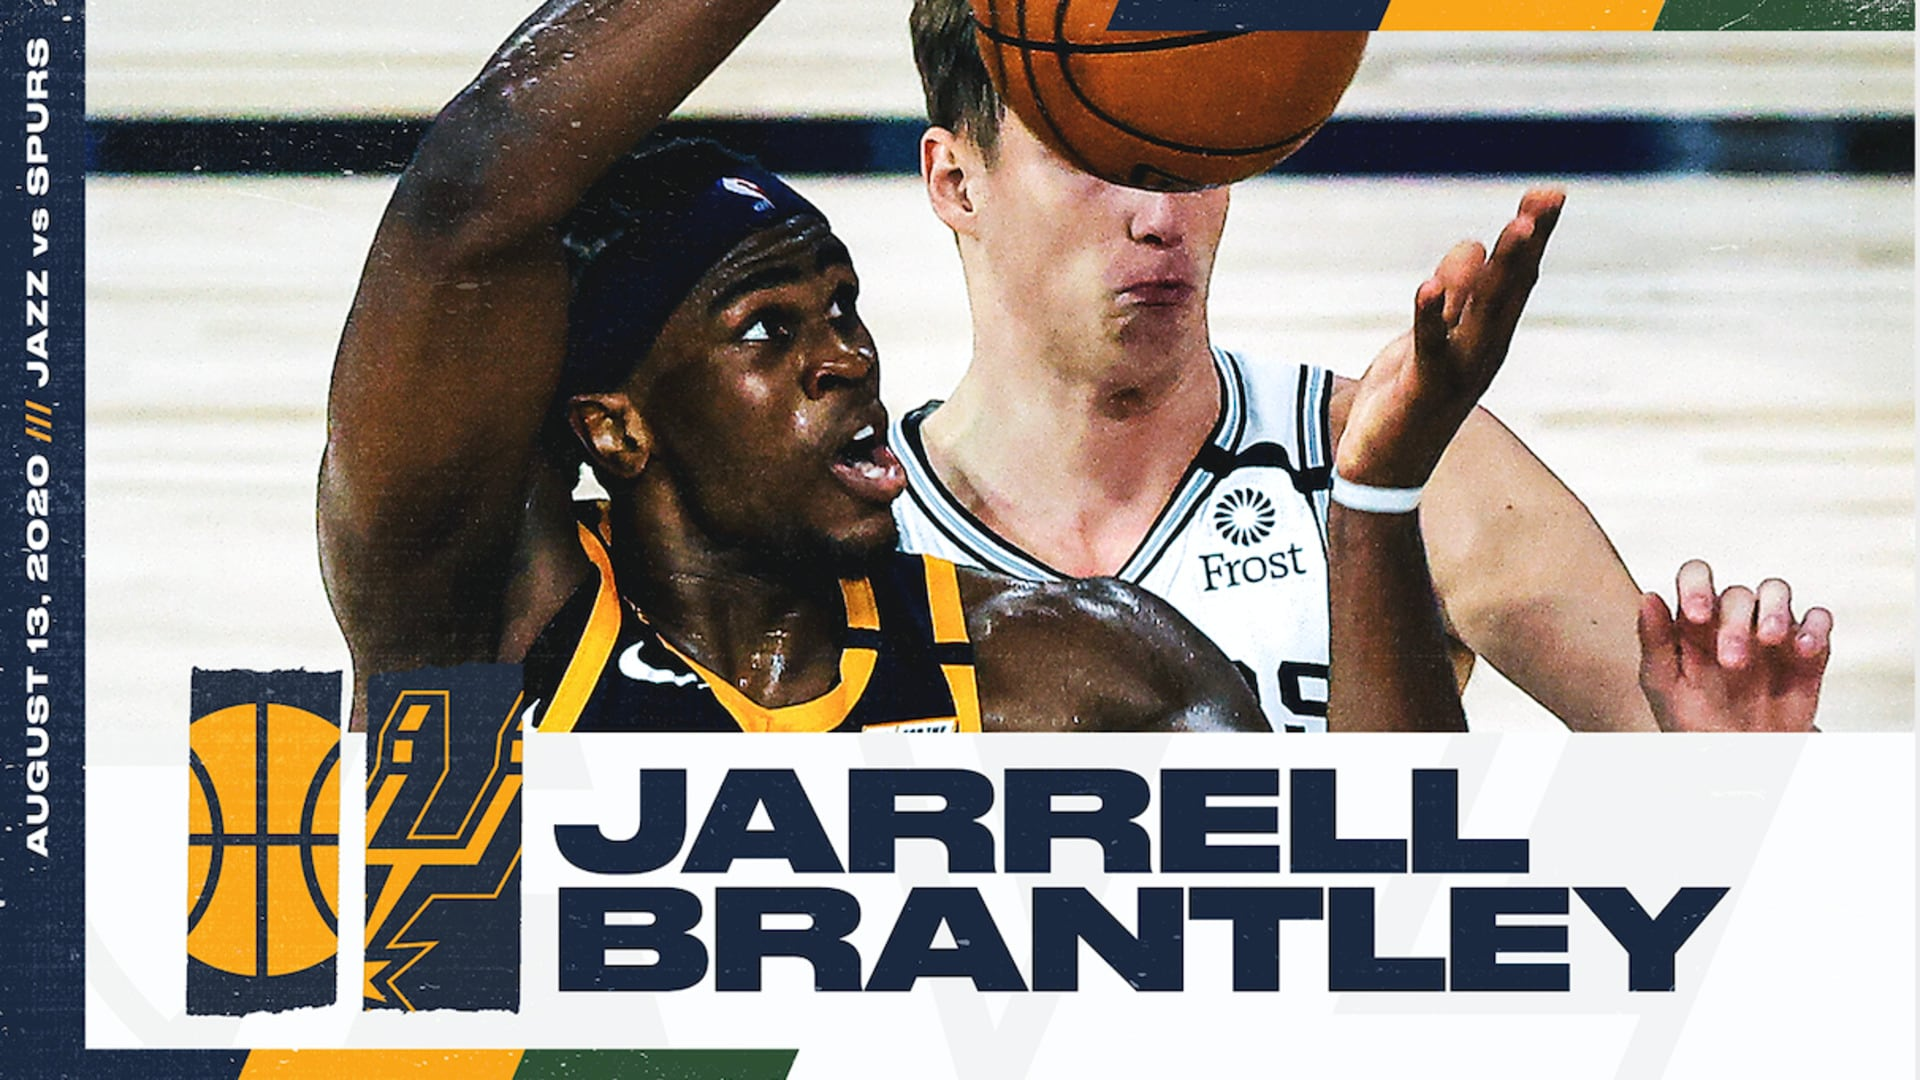 Highlights: Jarrell Brantley — 13 points, 6 assists